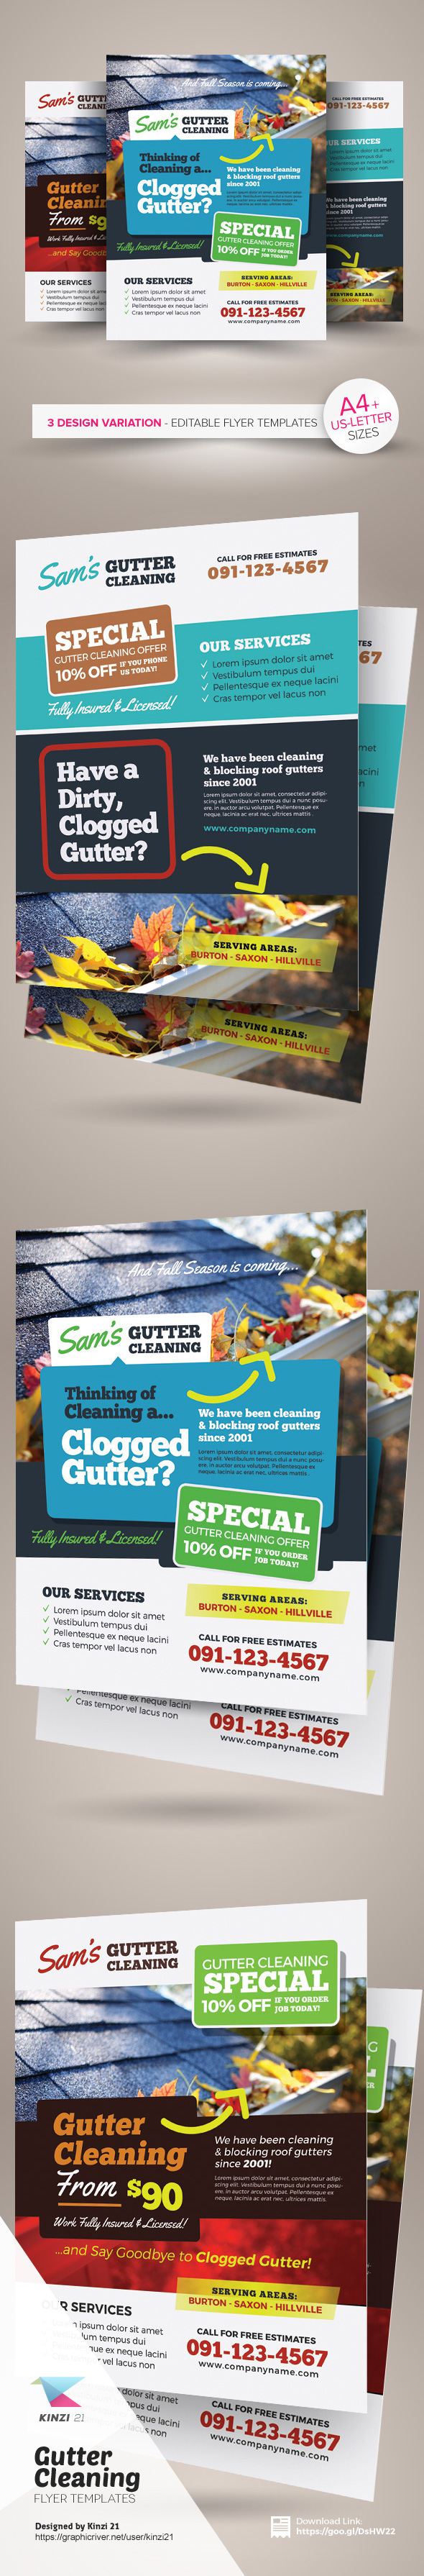 gutter cleaning flyer templates on behance gutter cleaning flyer templates are fully editable design templates created for on graphic river more info of the templates and how to get the